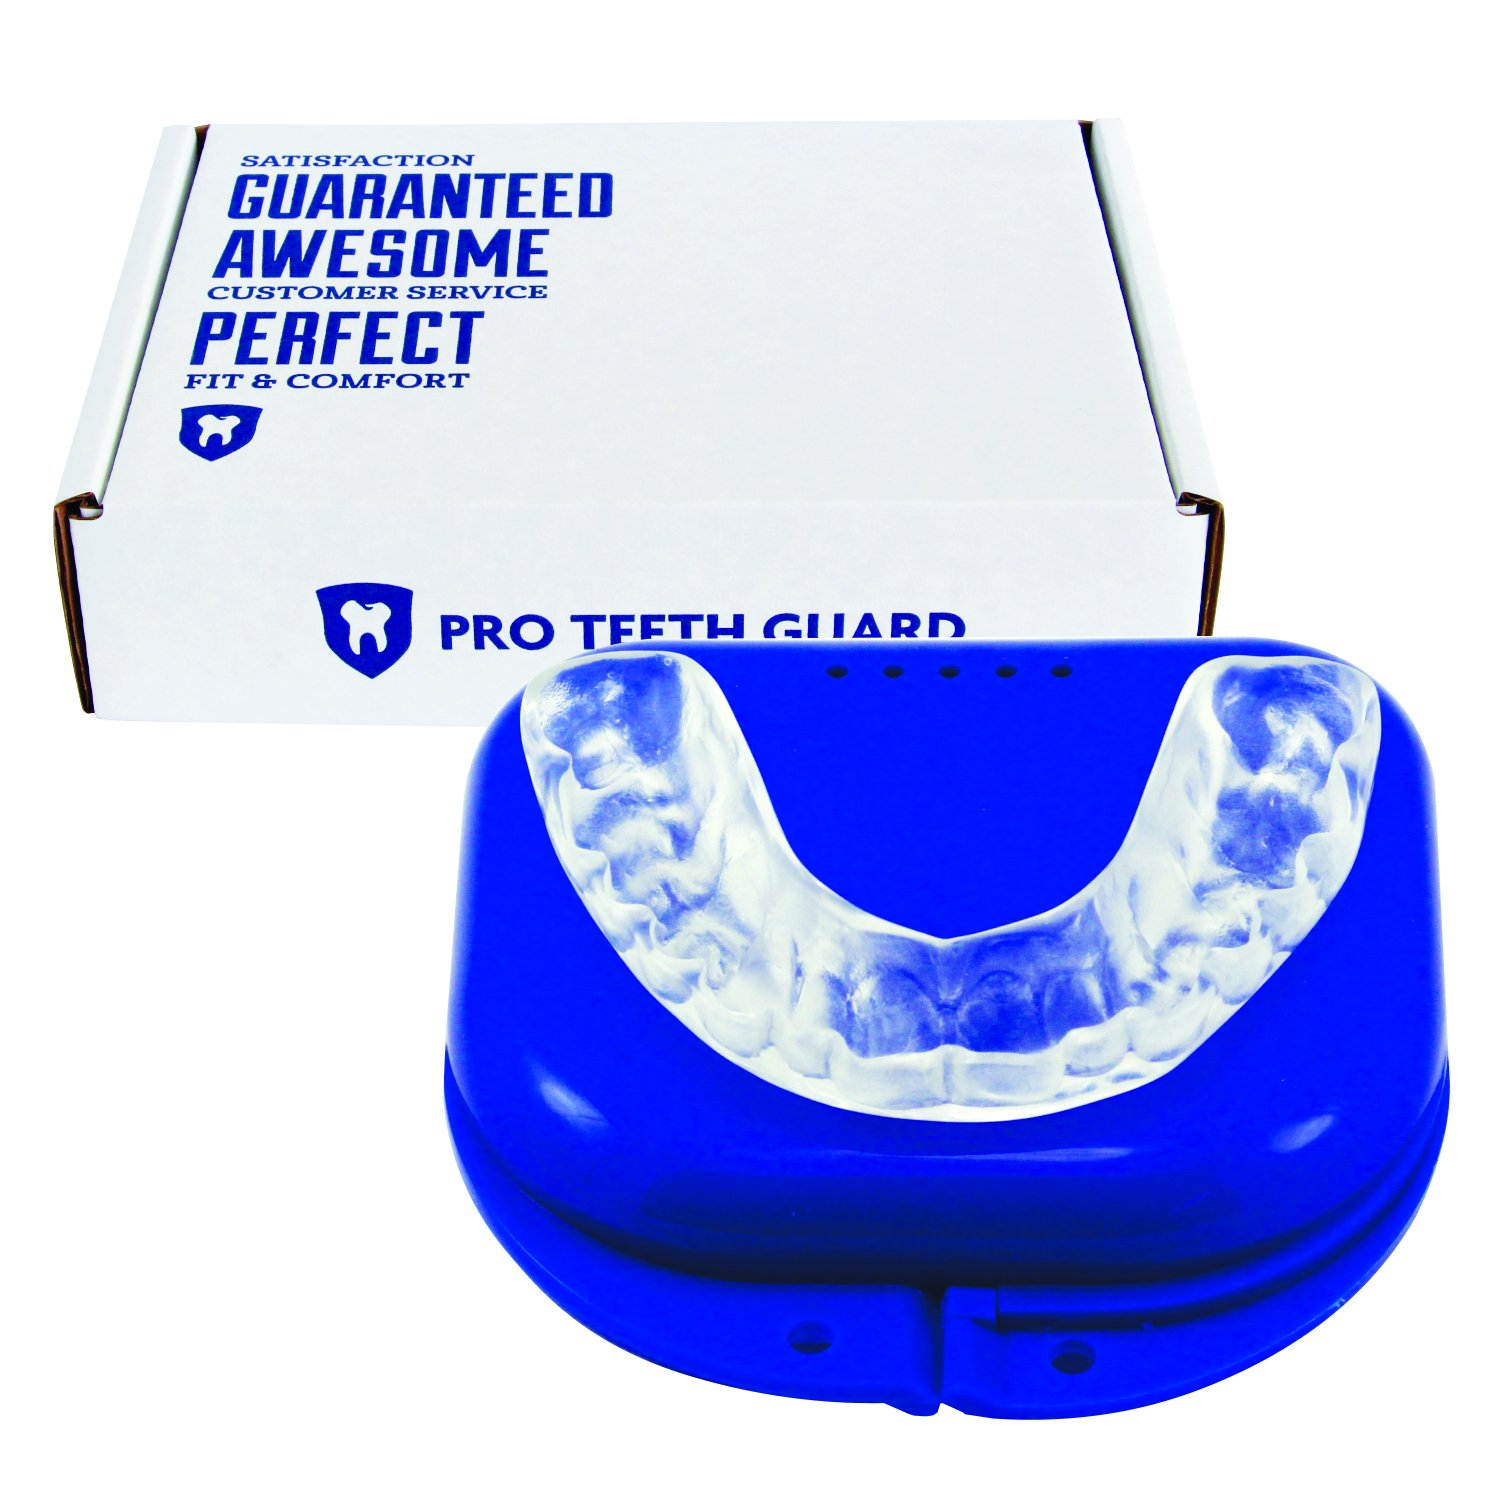 oral b mouth guard instructions microwave